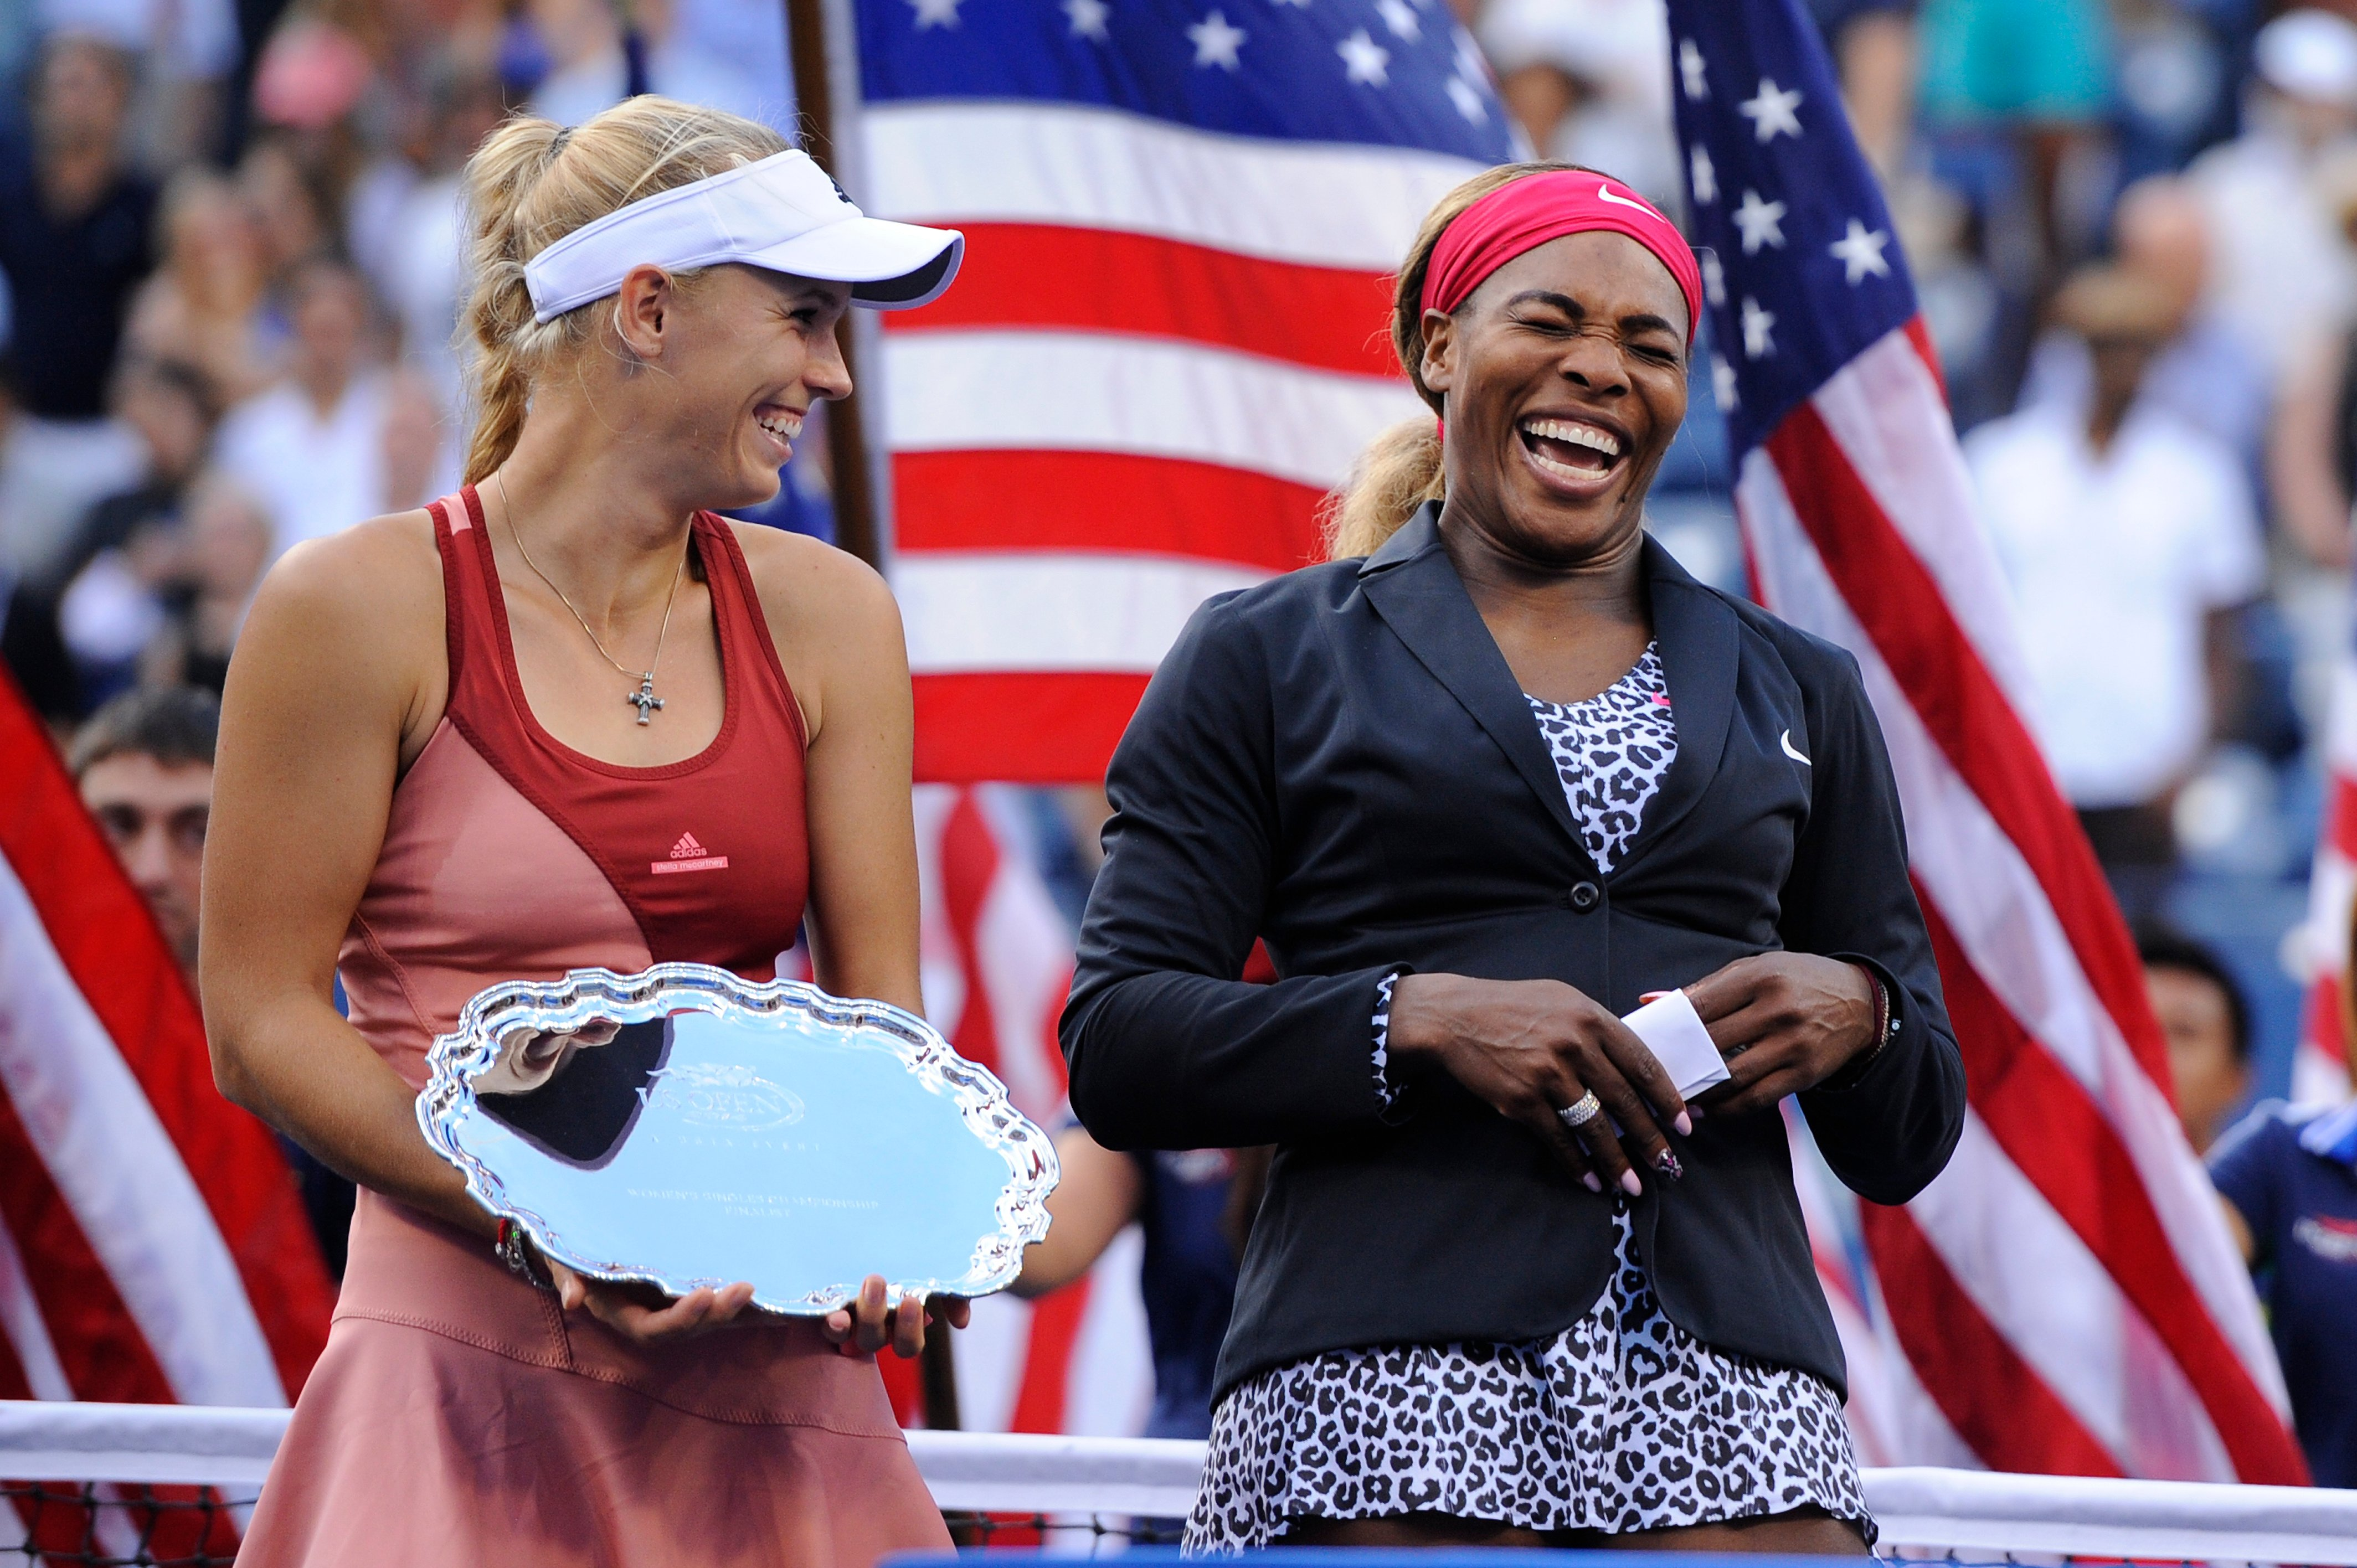 Caroline Wozniacki to play exhibition match against Serena Williams to celebrate career after retirement